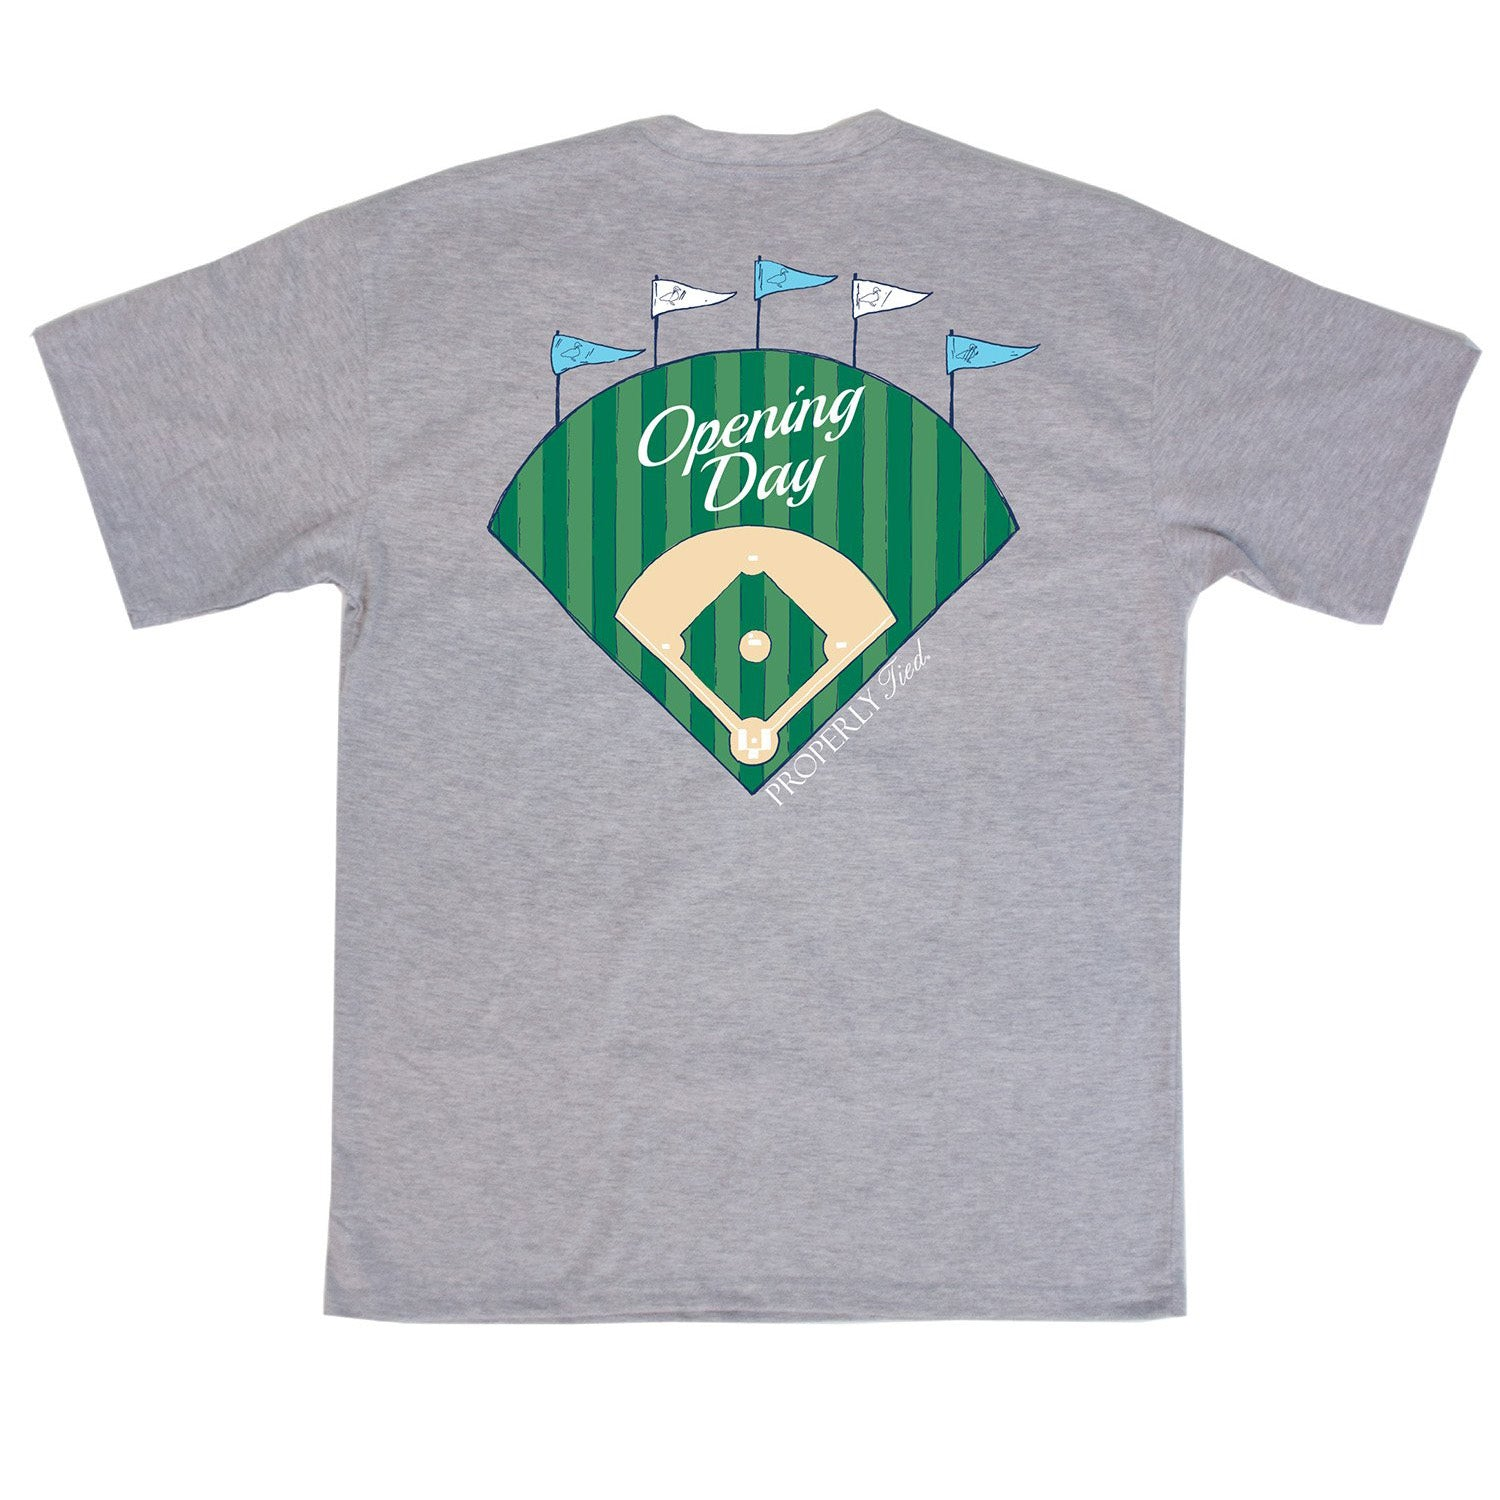 Opening Day - Short Sleeve